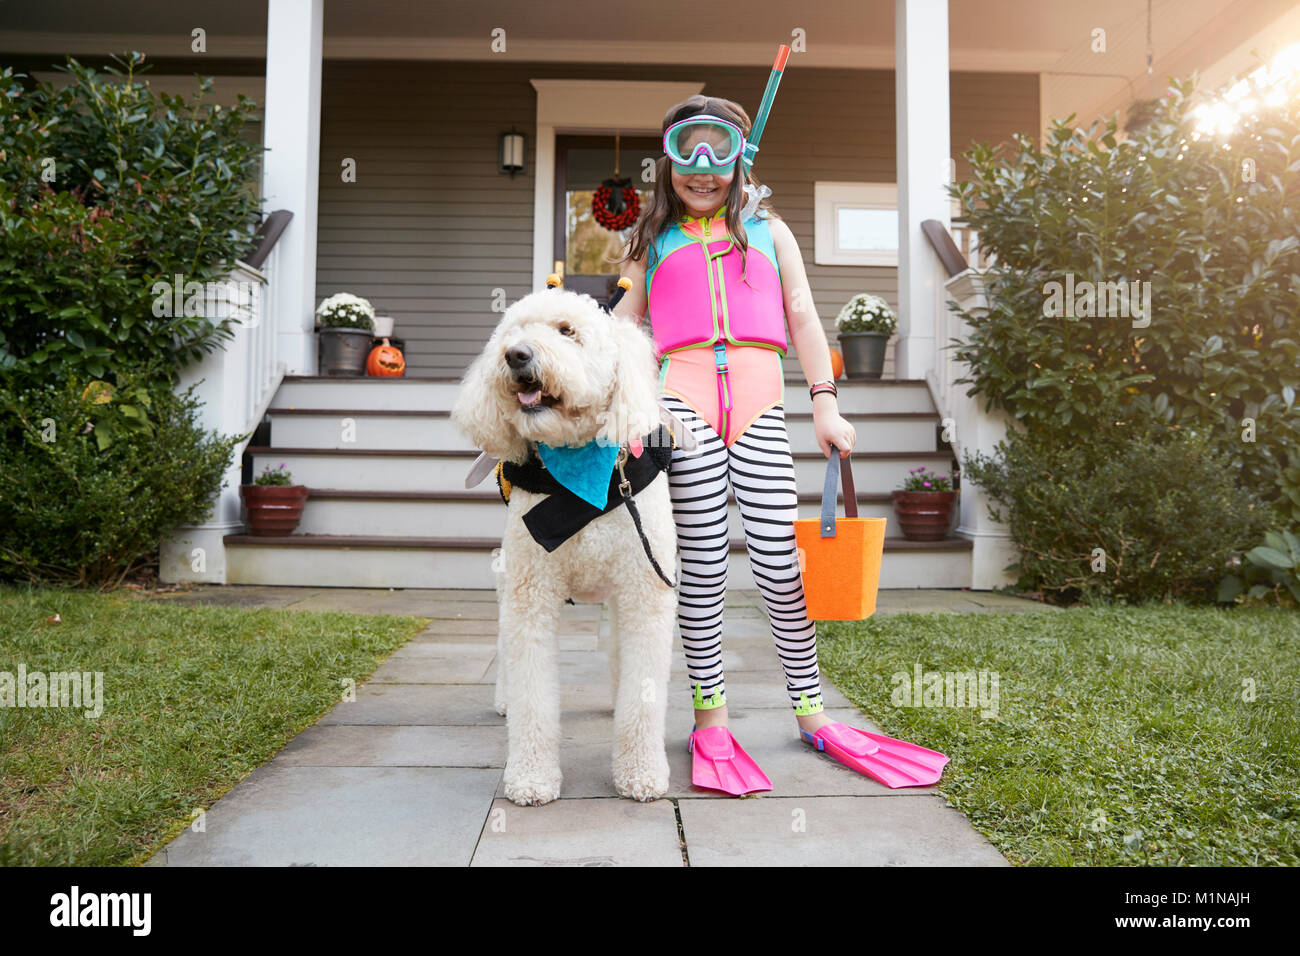 Girl With Dog Wearing Halloween Costumes For Trick Or Treating - Stock Image